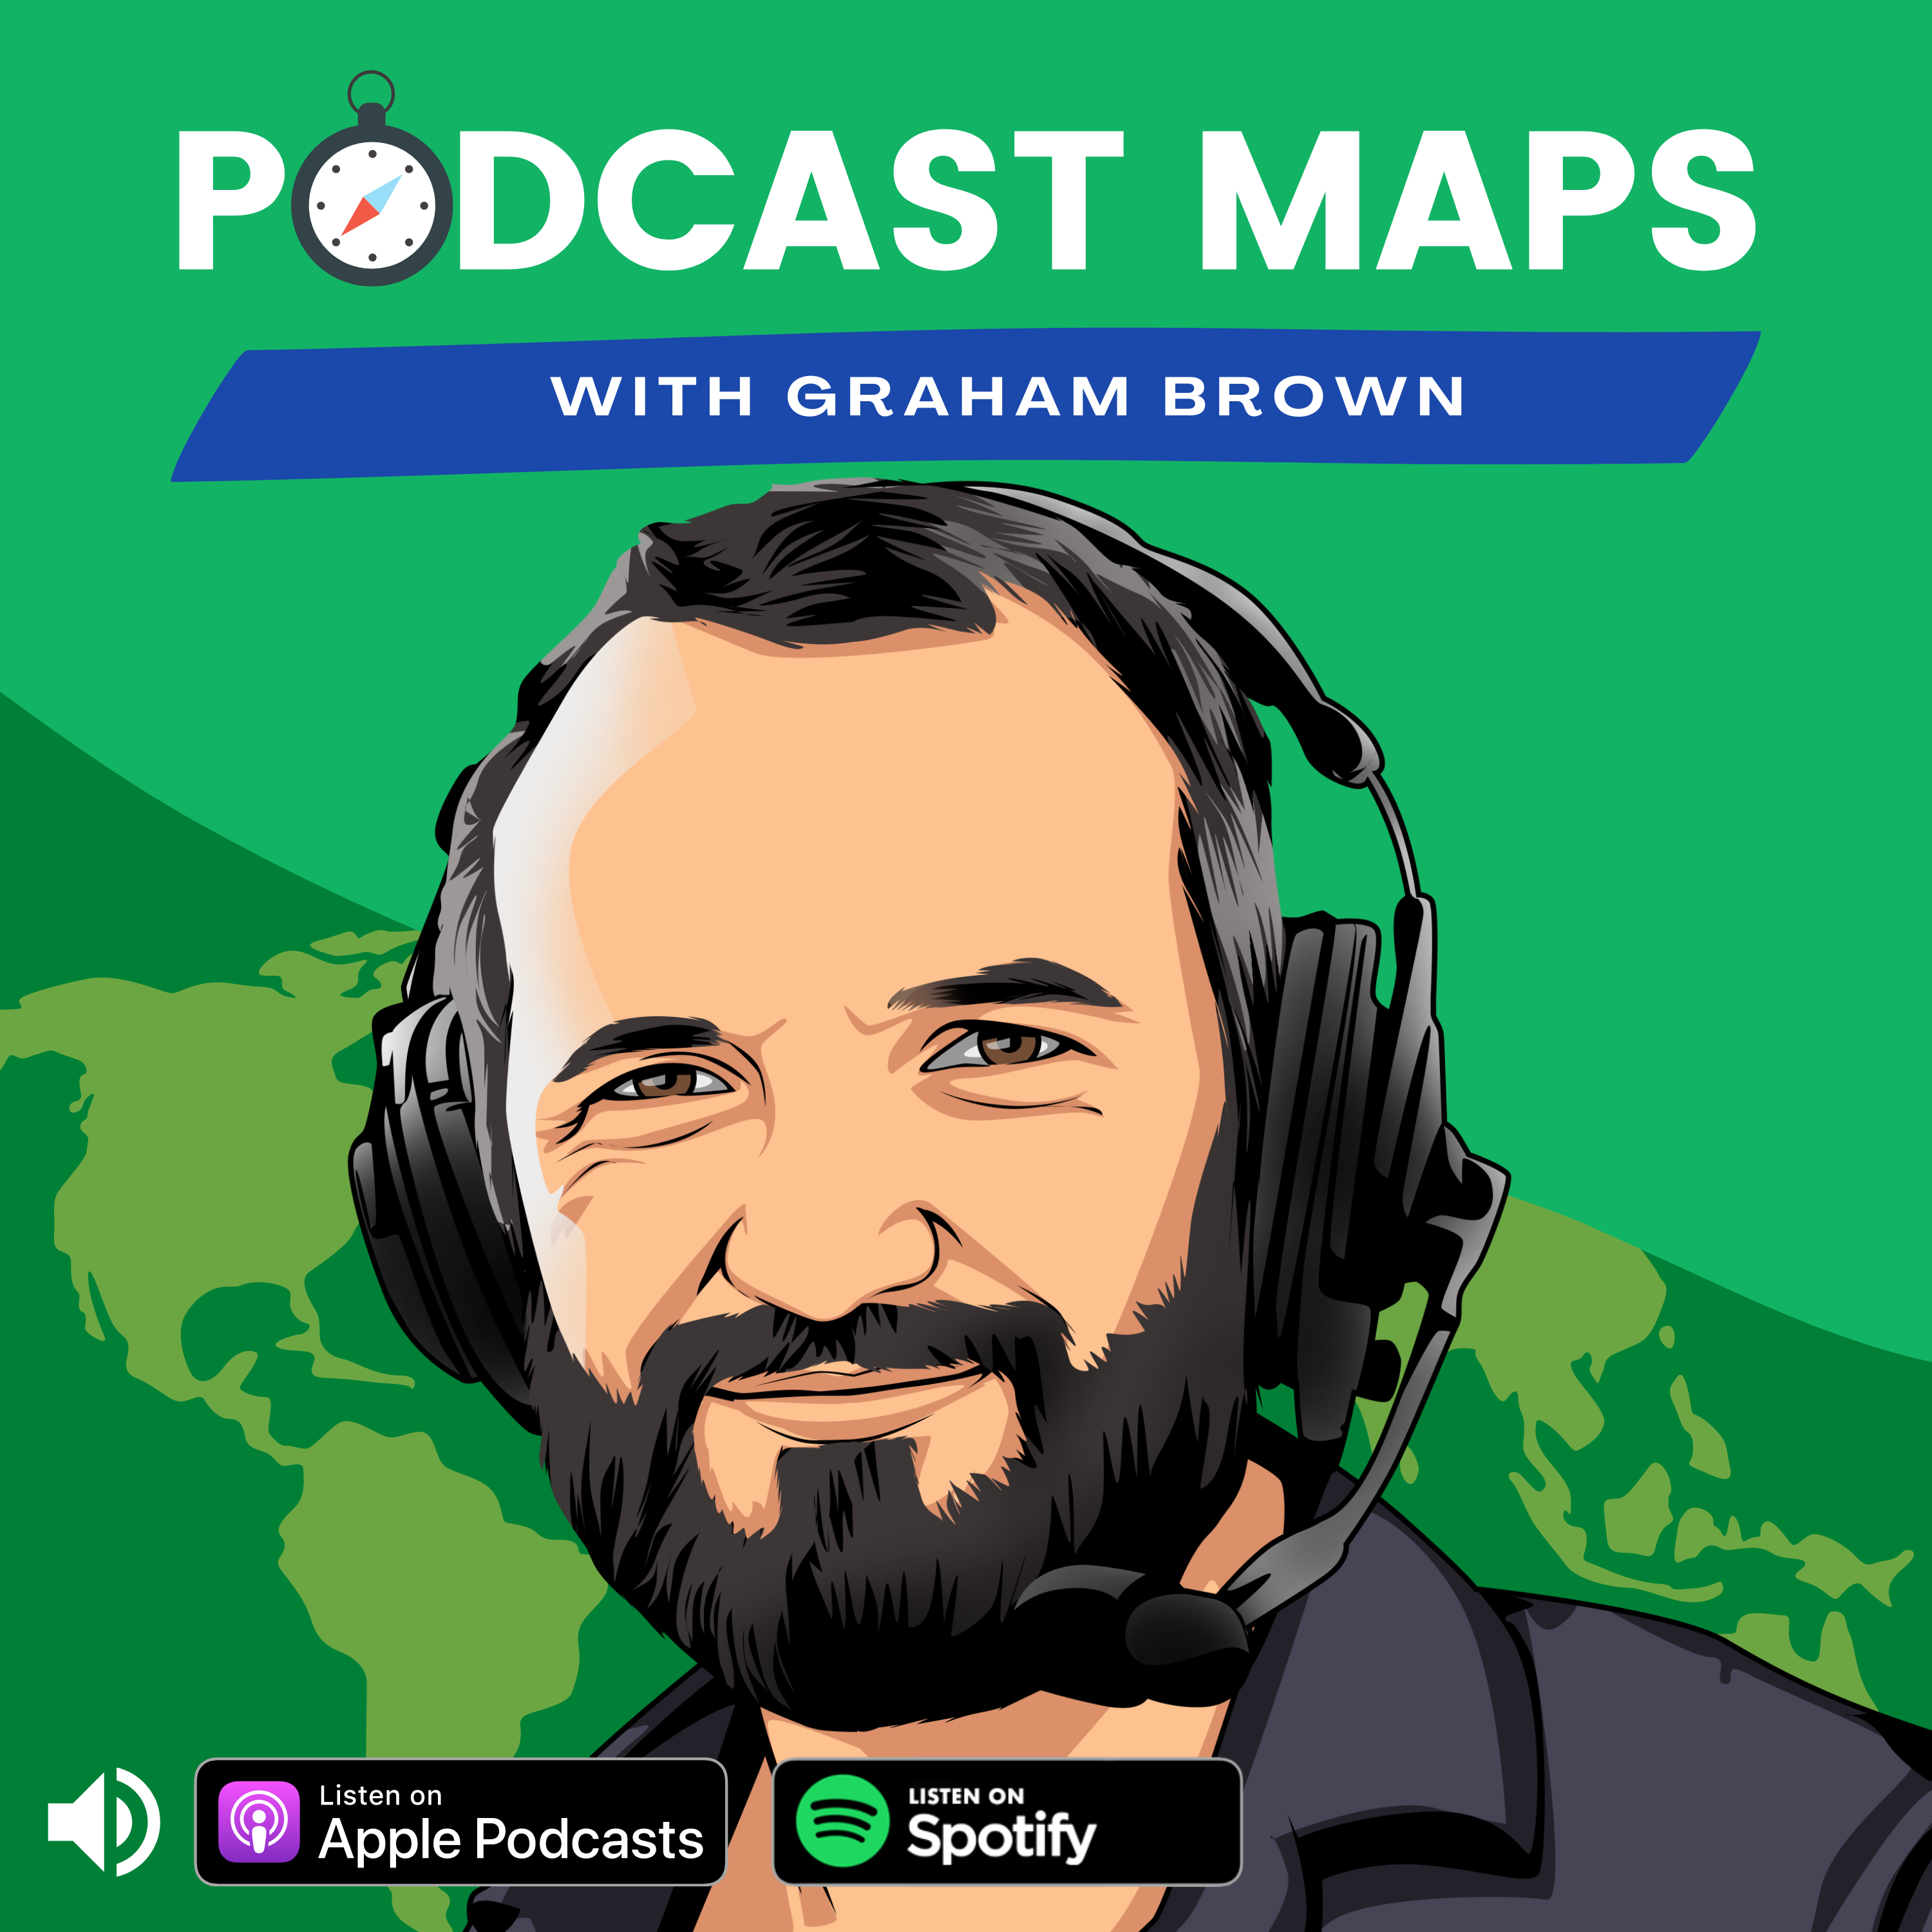 Podcast Maps by Graham Brown